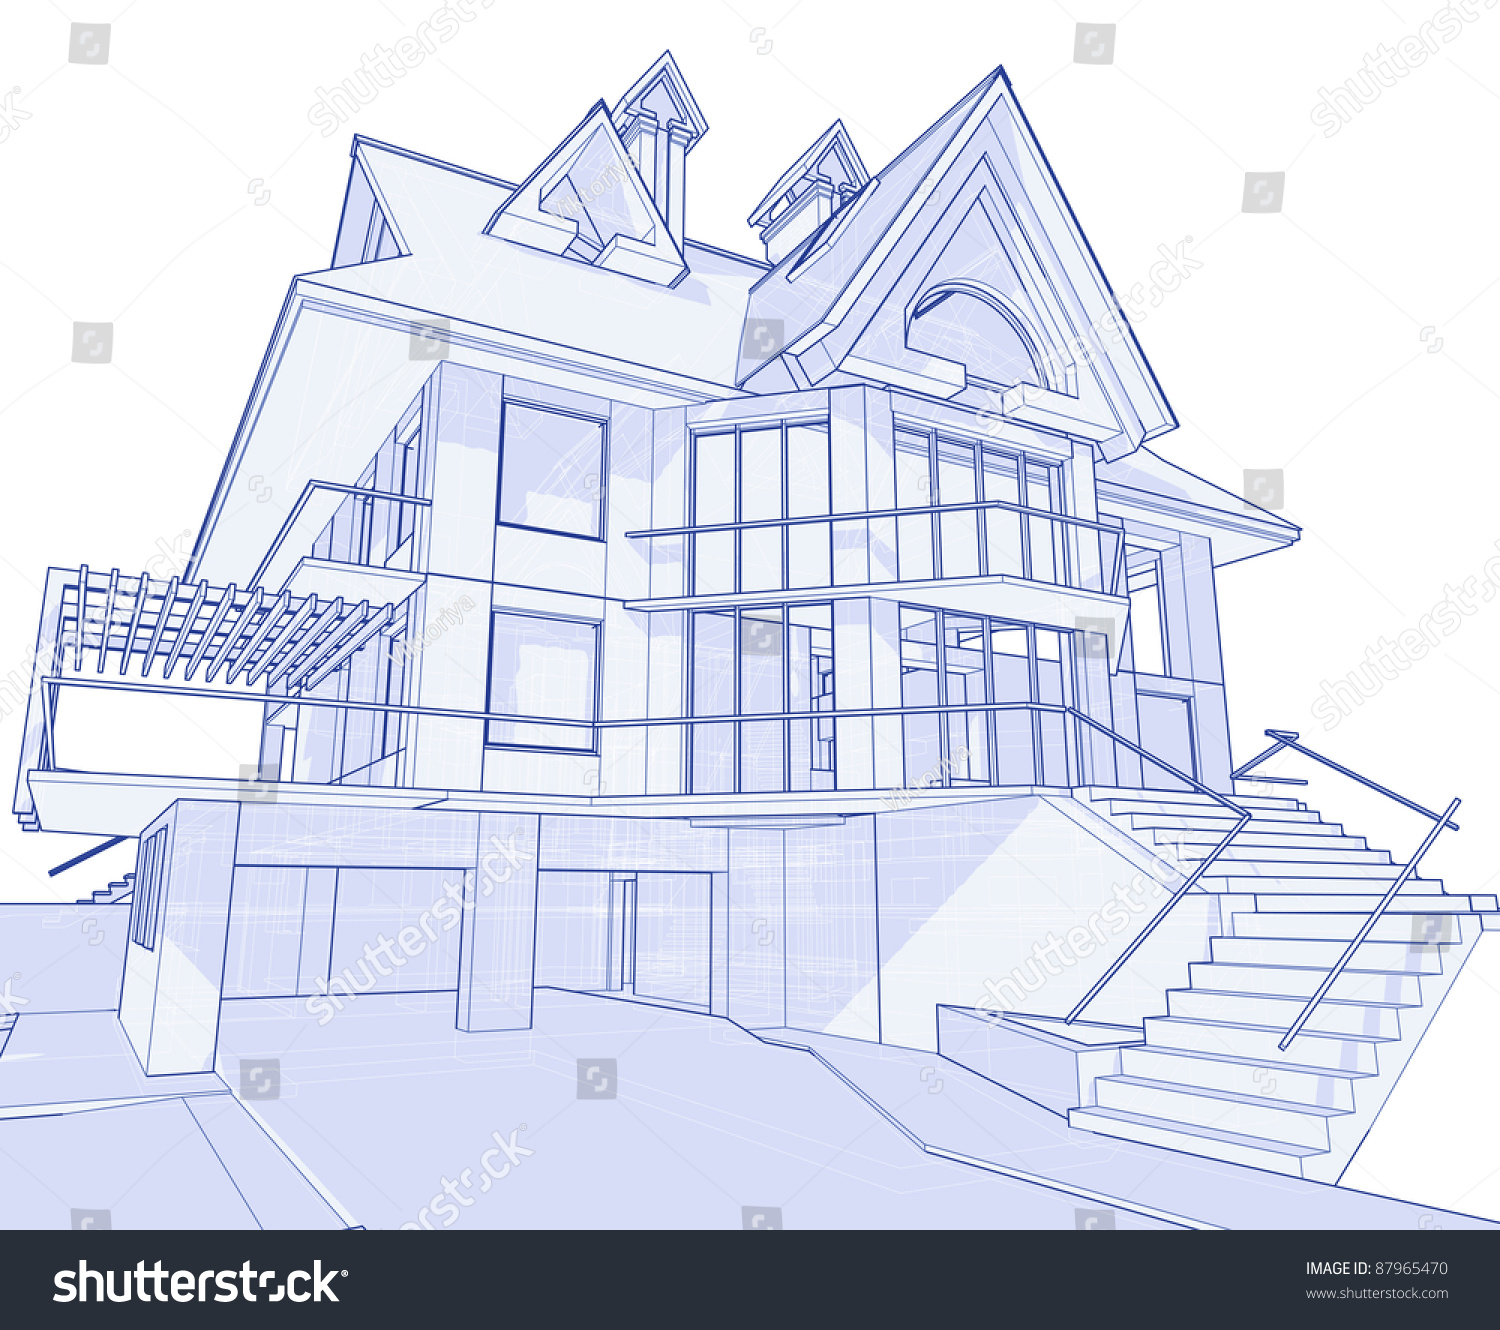 3d Blueprint House: Technical Draw. Bitmap Copy My Vector ID 17455729